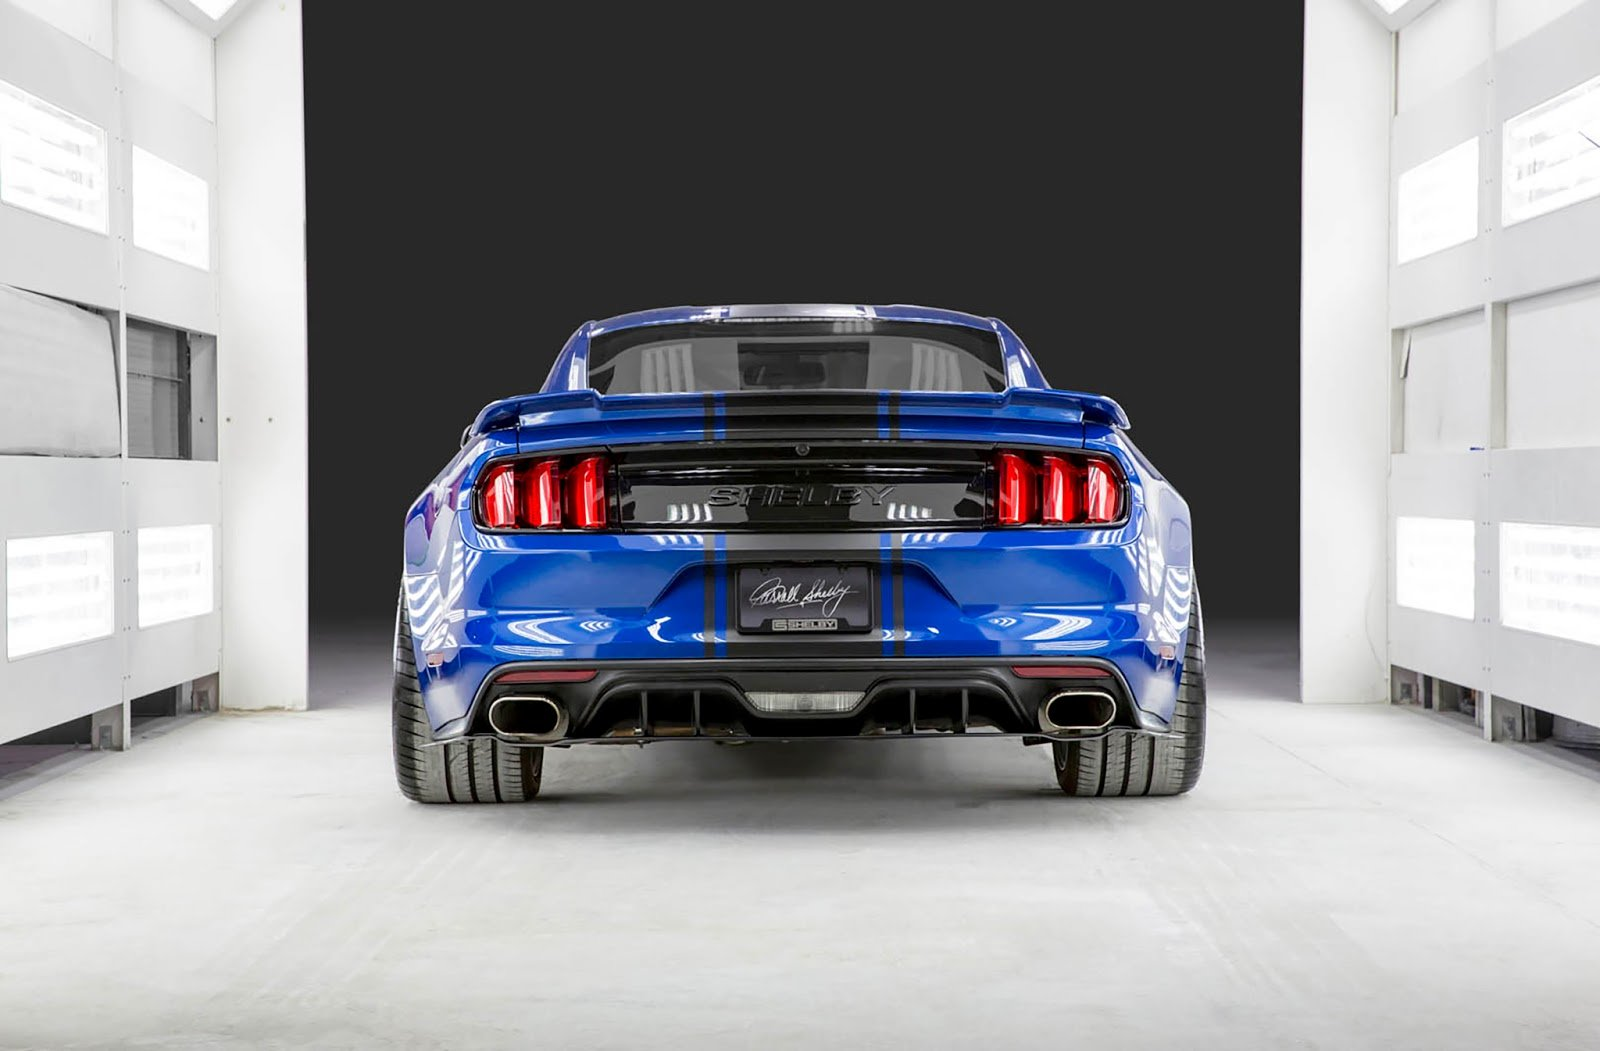 Check Out Shelby's New Widebody Super Snake Concept